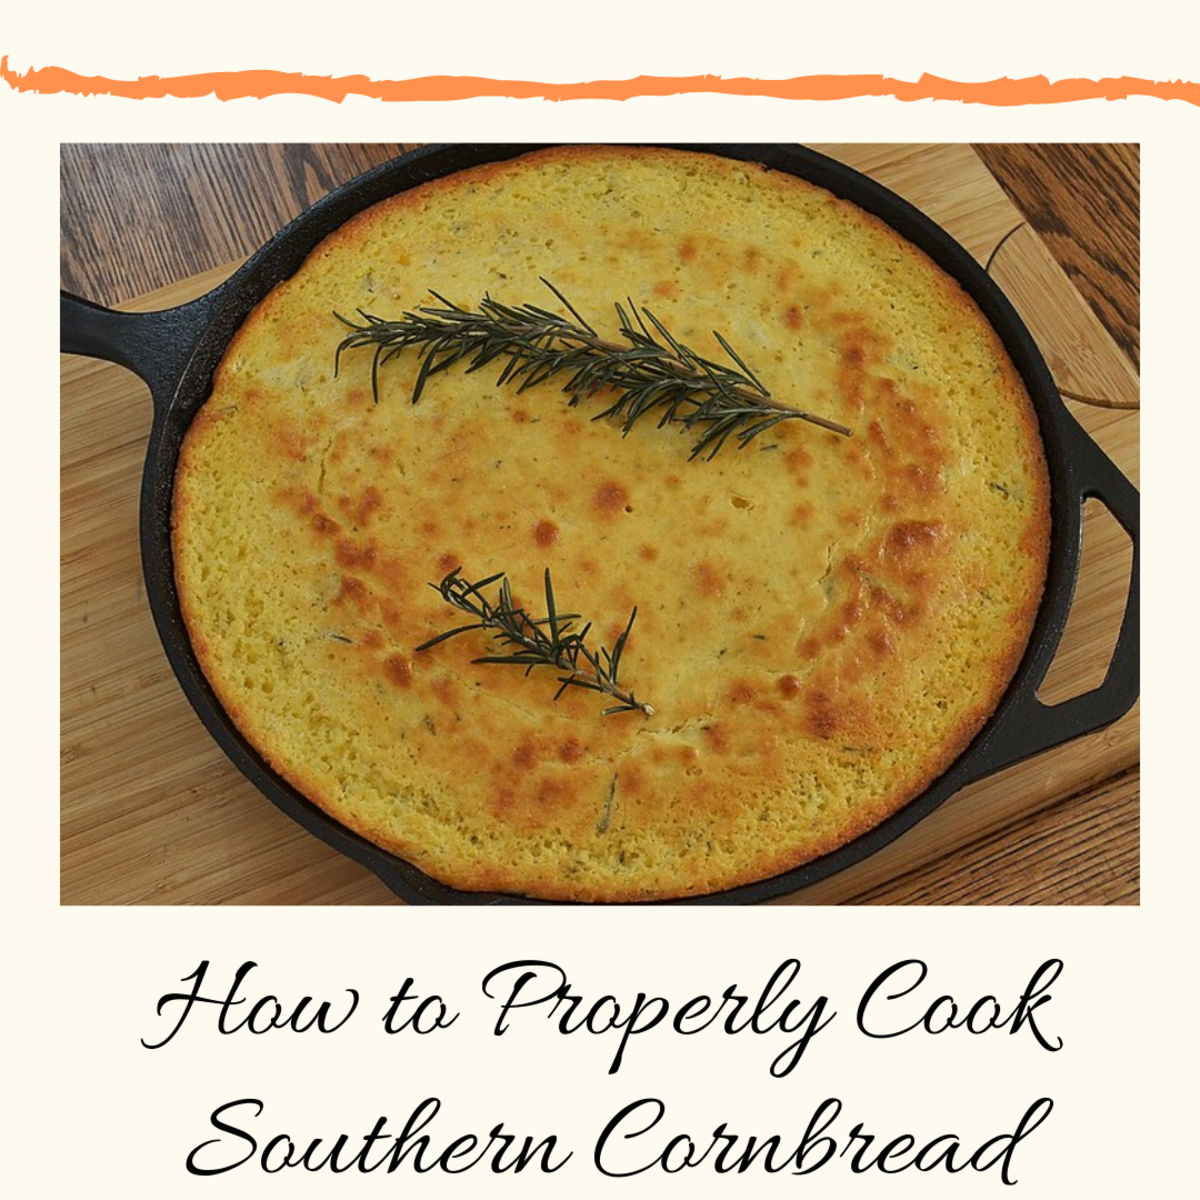 How to Properly Cook Southern Cornbread